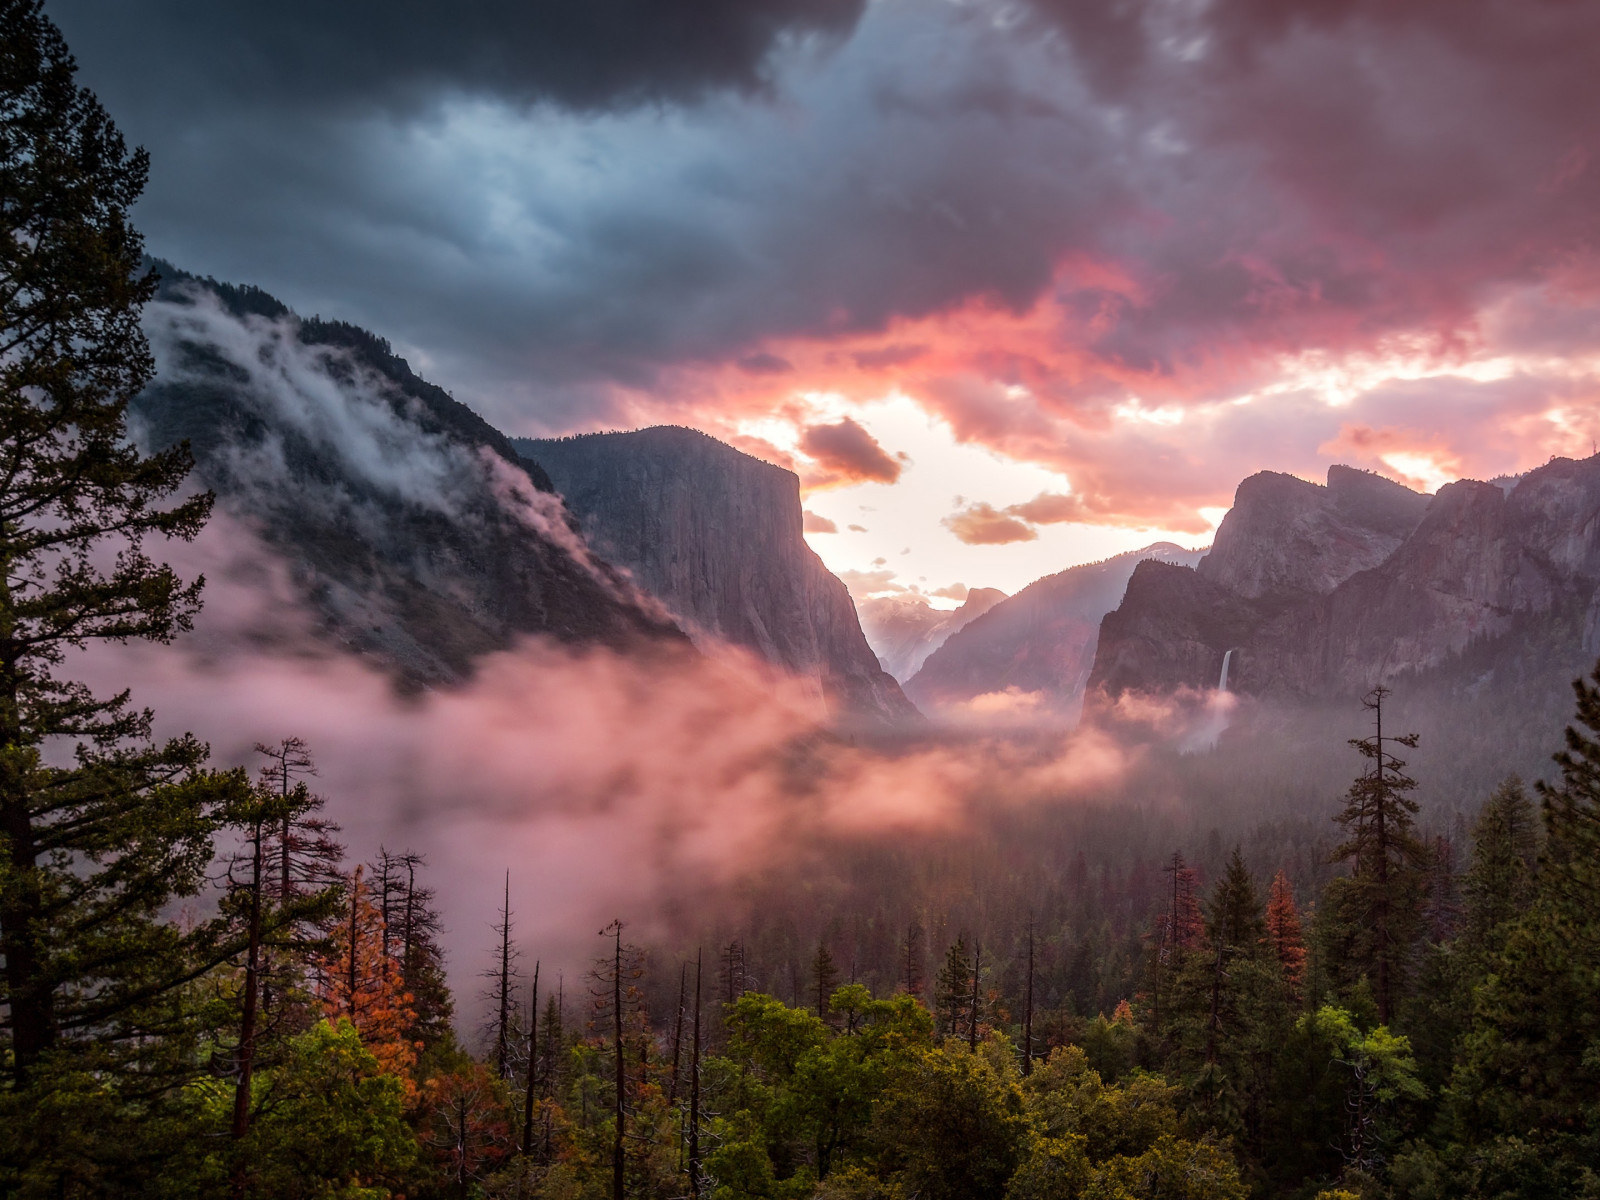 Landscape from Yosemite National Park wallpaper 1600x1200